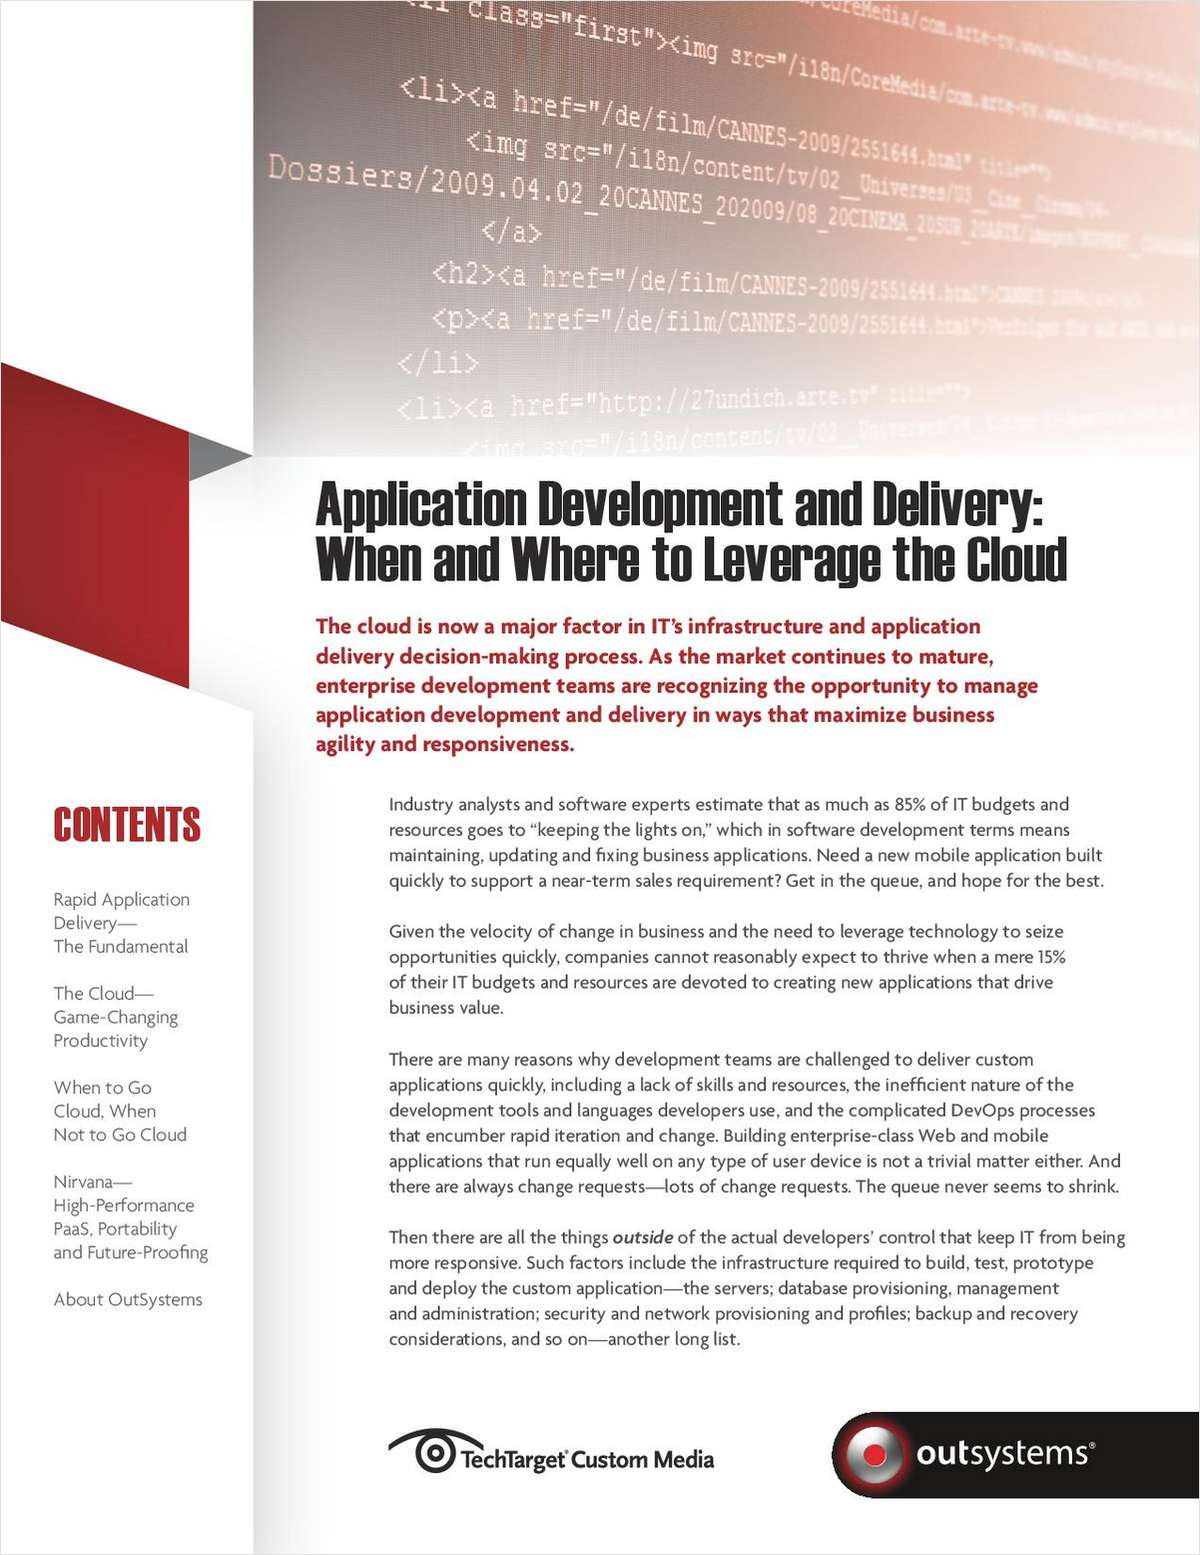 Application Development and Delivery: When and Where to Leverage the Cloud